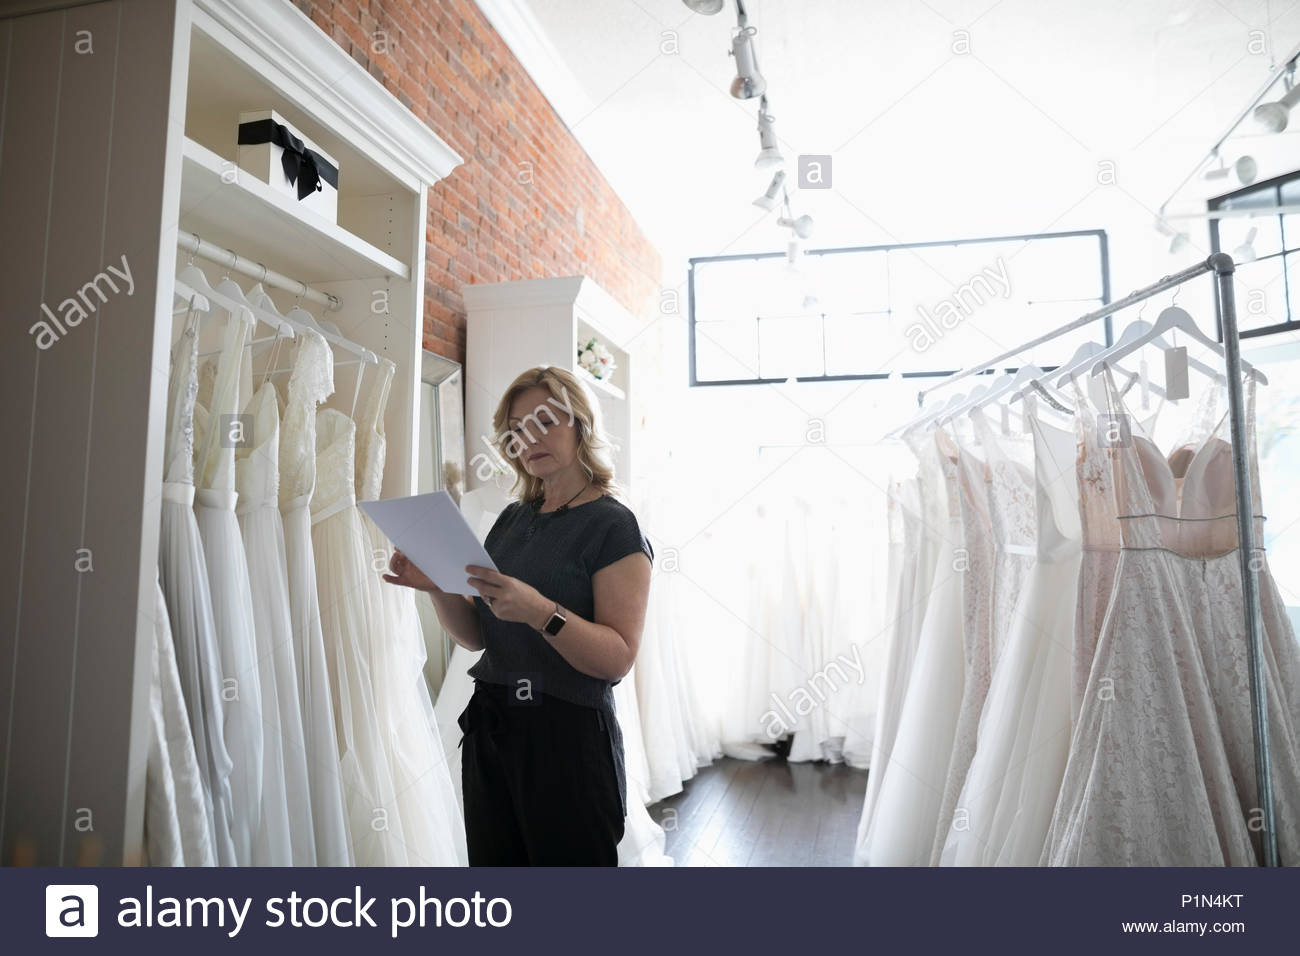 Bridal boutique owner checking wedding dress inventory - Stock Image